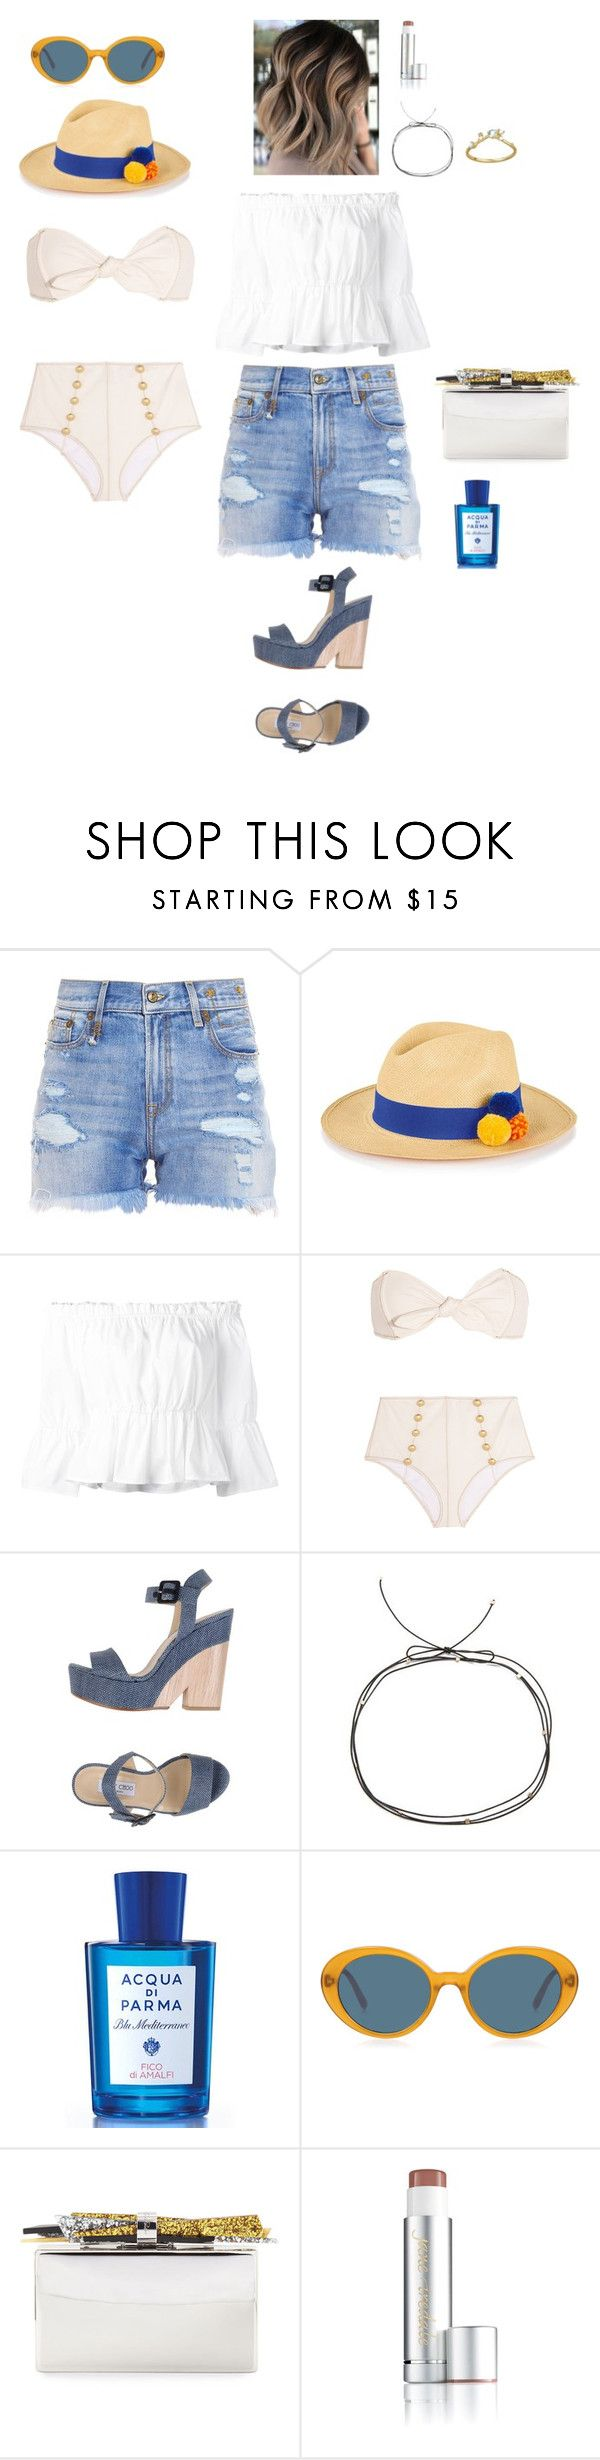 """""""Sorrento Travel Outfits"""" by leacousty55 ❤ liked on Polyvore featuring R13, G.Viteri, Dondup, Lisa Marie Fernandez, Jimmy Choo, Cloverpost, Acqua di Parma, Oliver Peoples, Edie Parker and Jane Iredale"""